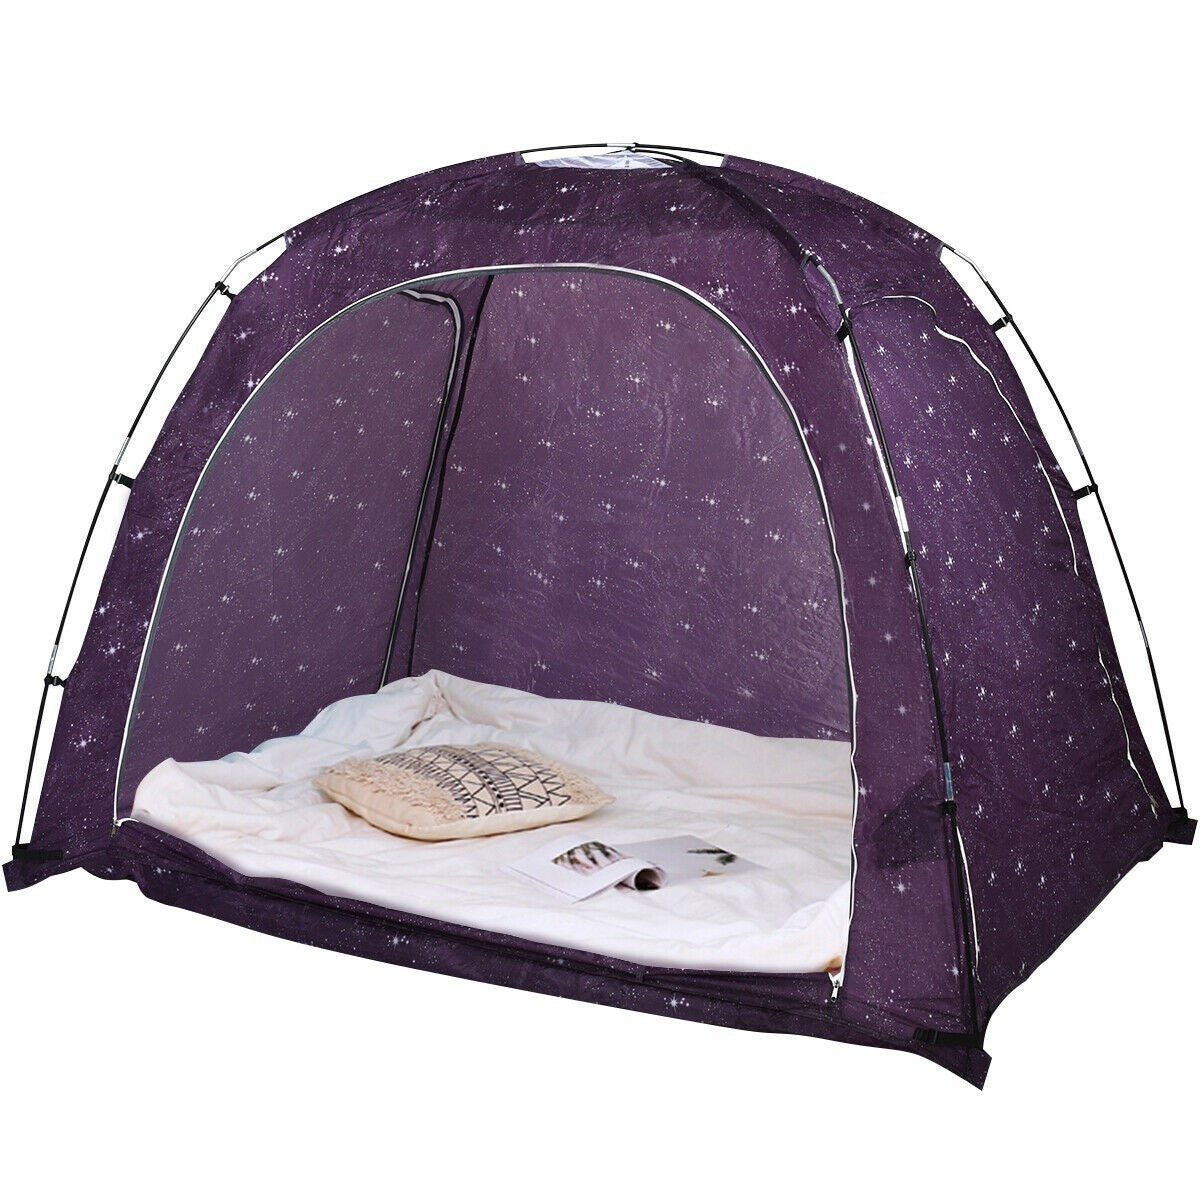 Premium Kids Indoor Privacy Bed Play Tent on Bed with Bag - Morealis